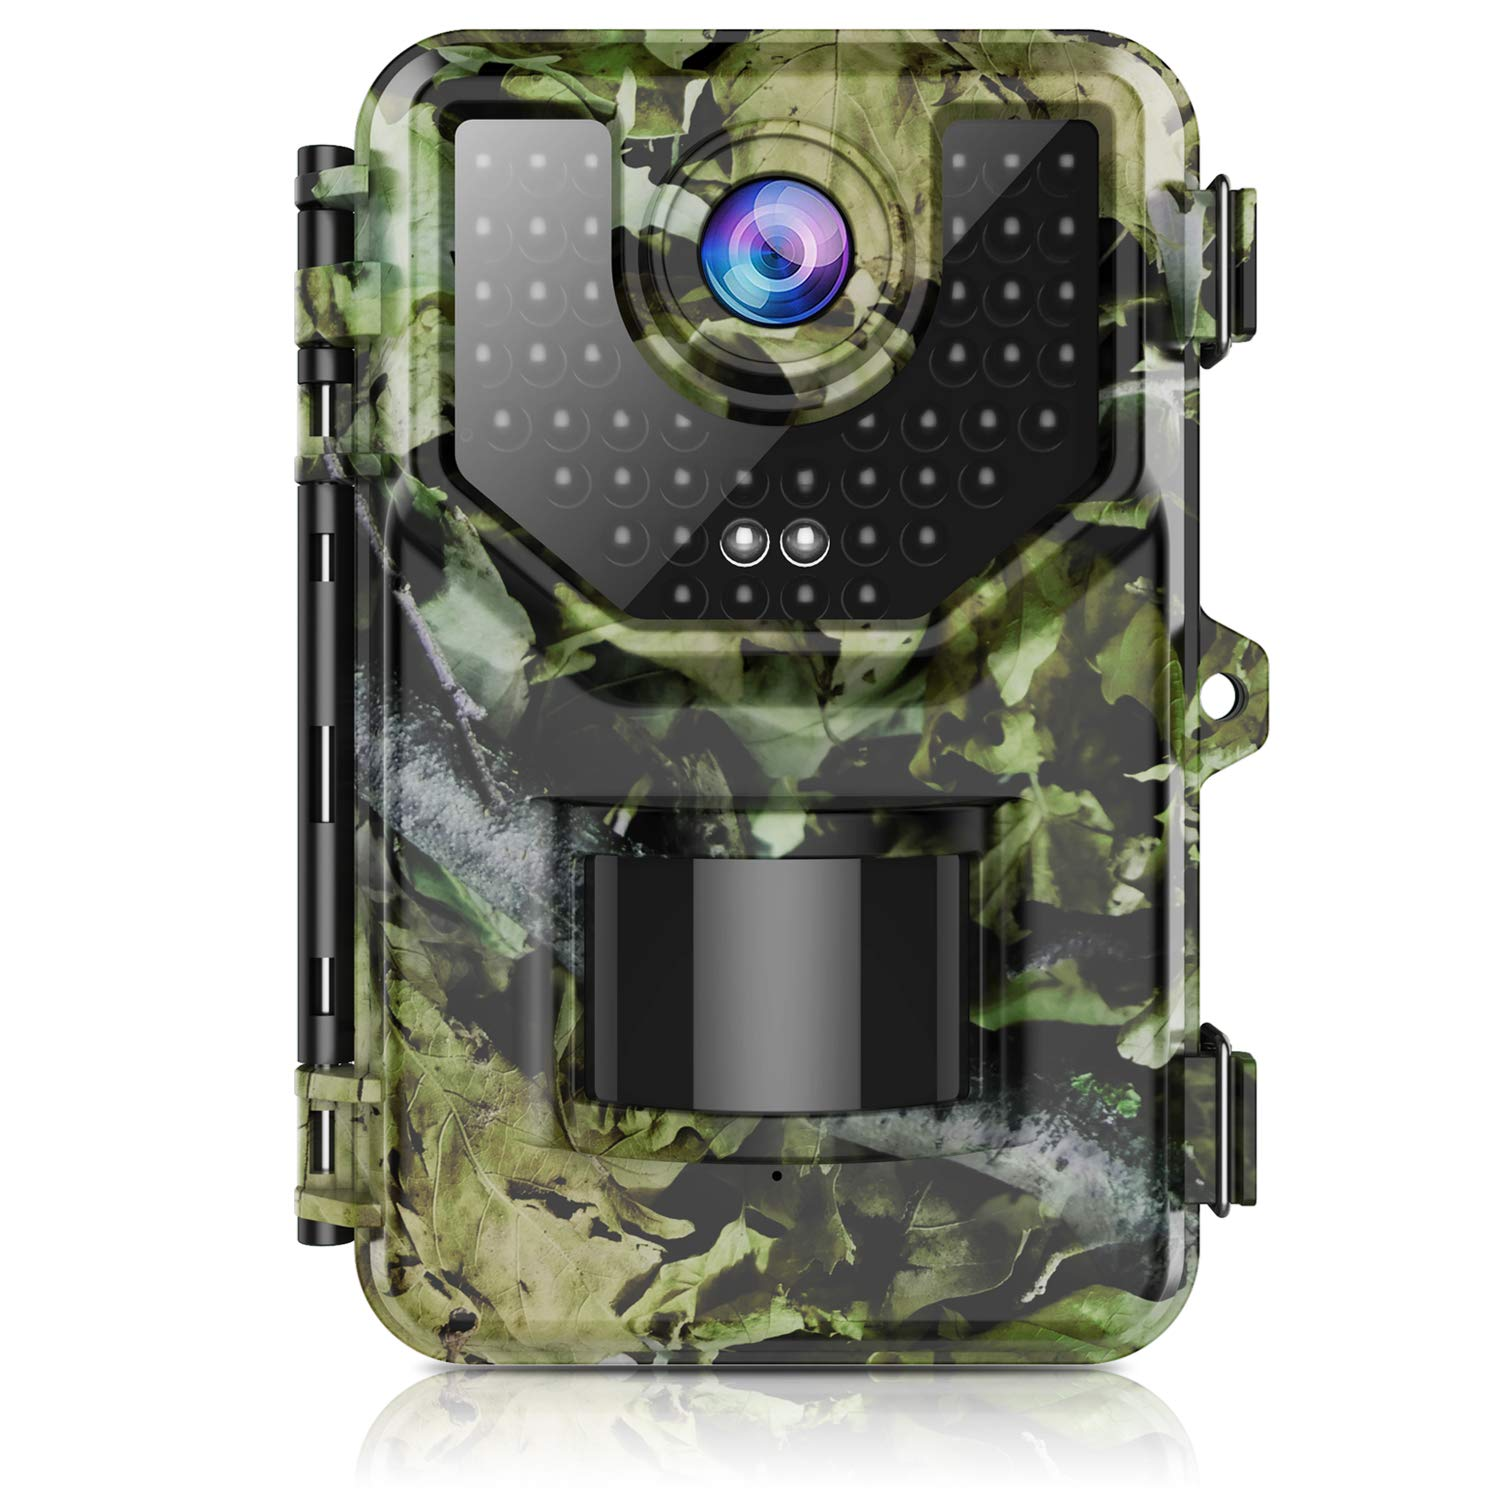 """Trail Camera, Hunting Camera with 120° Wide-Angle Motion Latest Sensor View 0.2s Trigger Time 1080P 16MP Trail Game Camera with 940nm No Glow and IP66 Waterproof 2.4"""" LCD 48pcs for Wildlife Monitoring"""